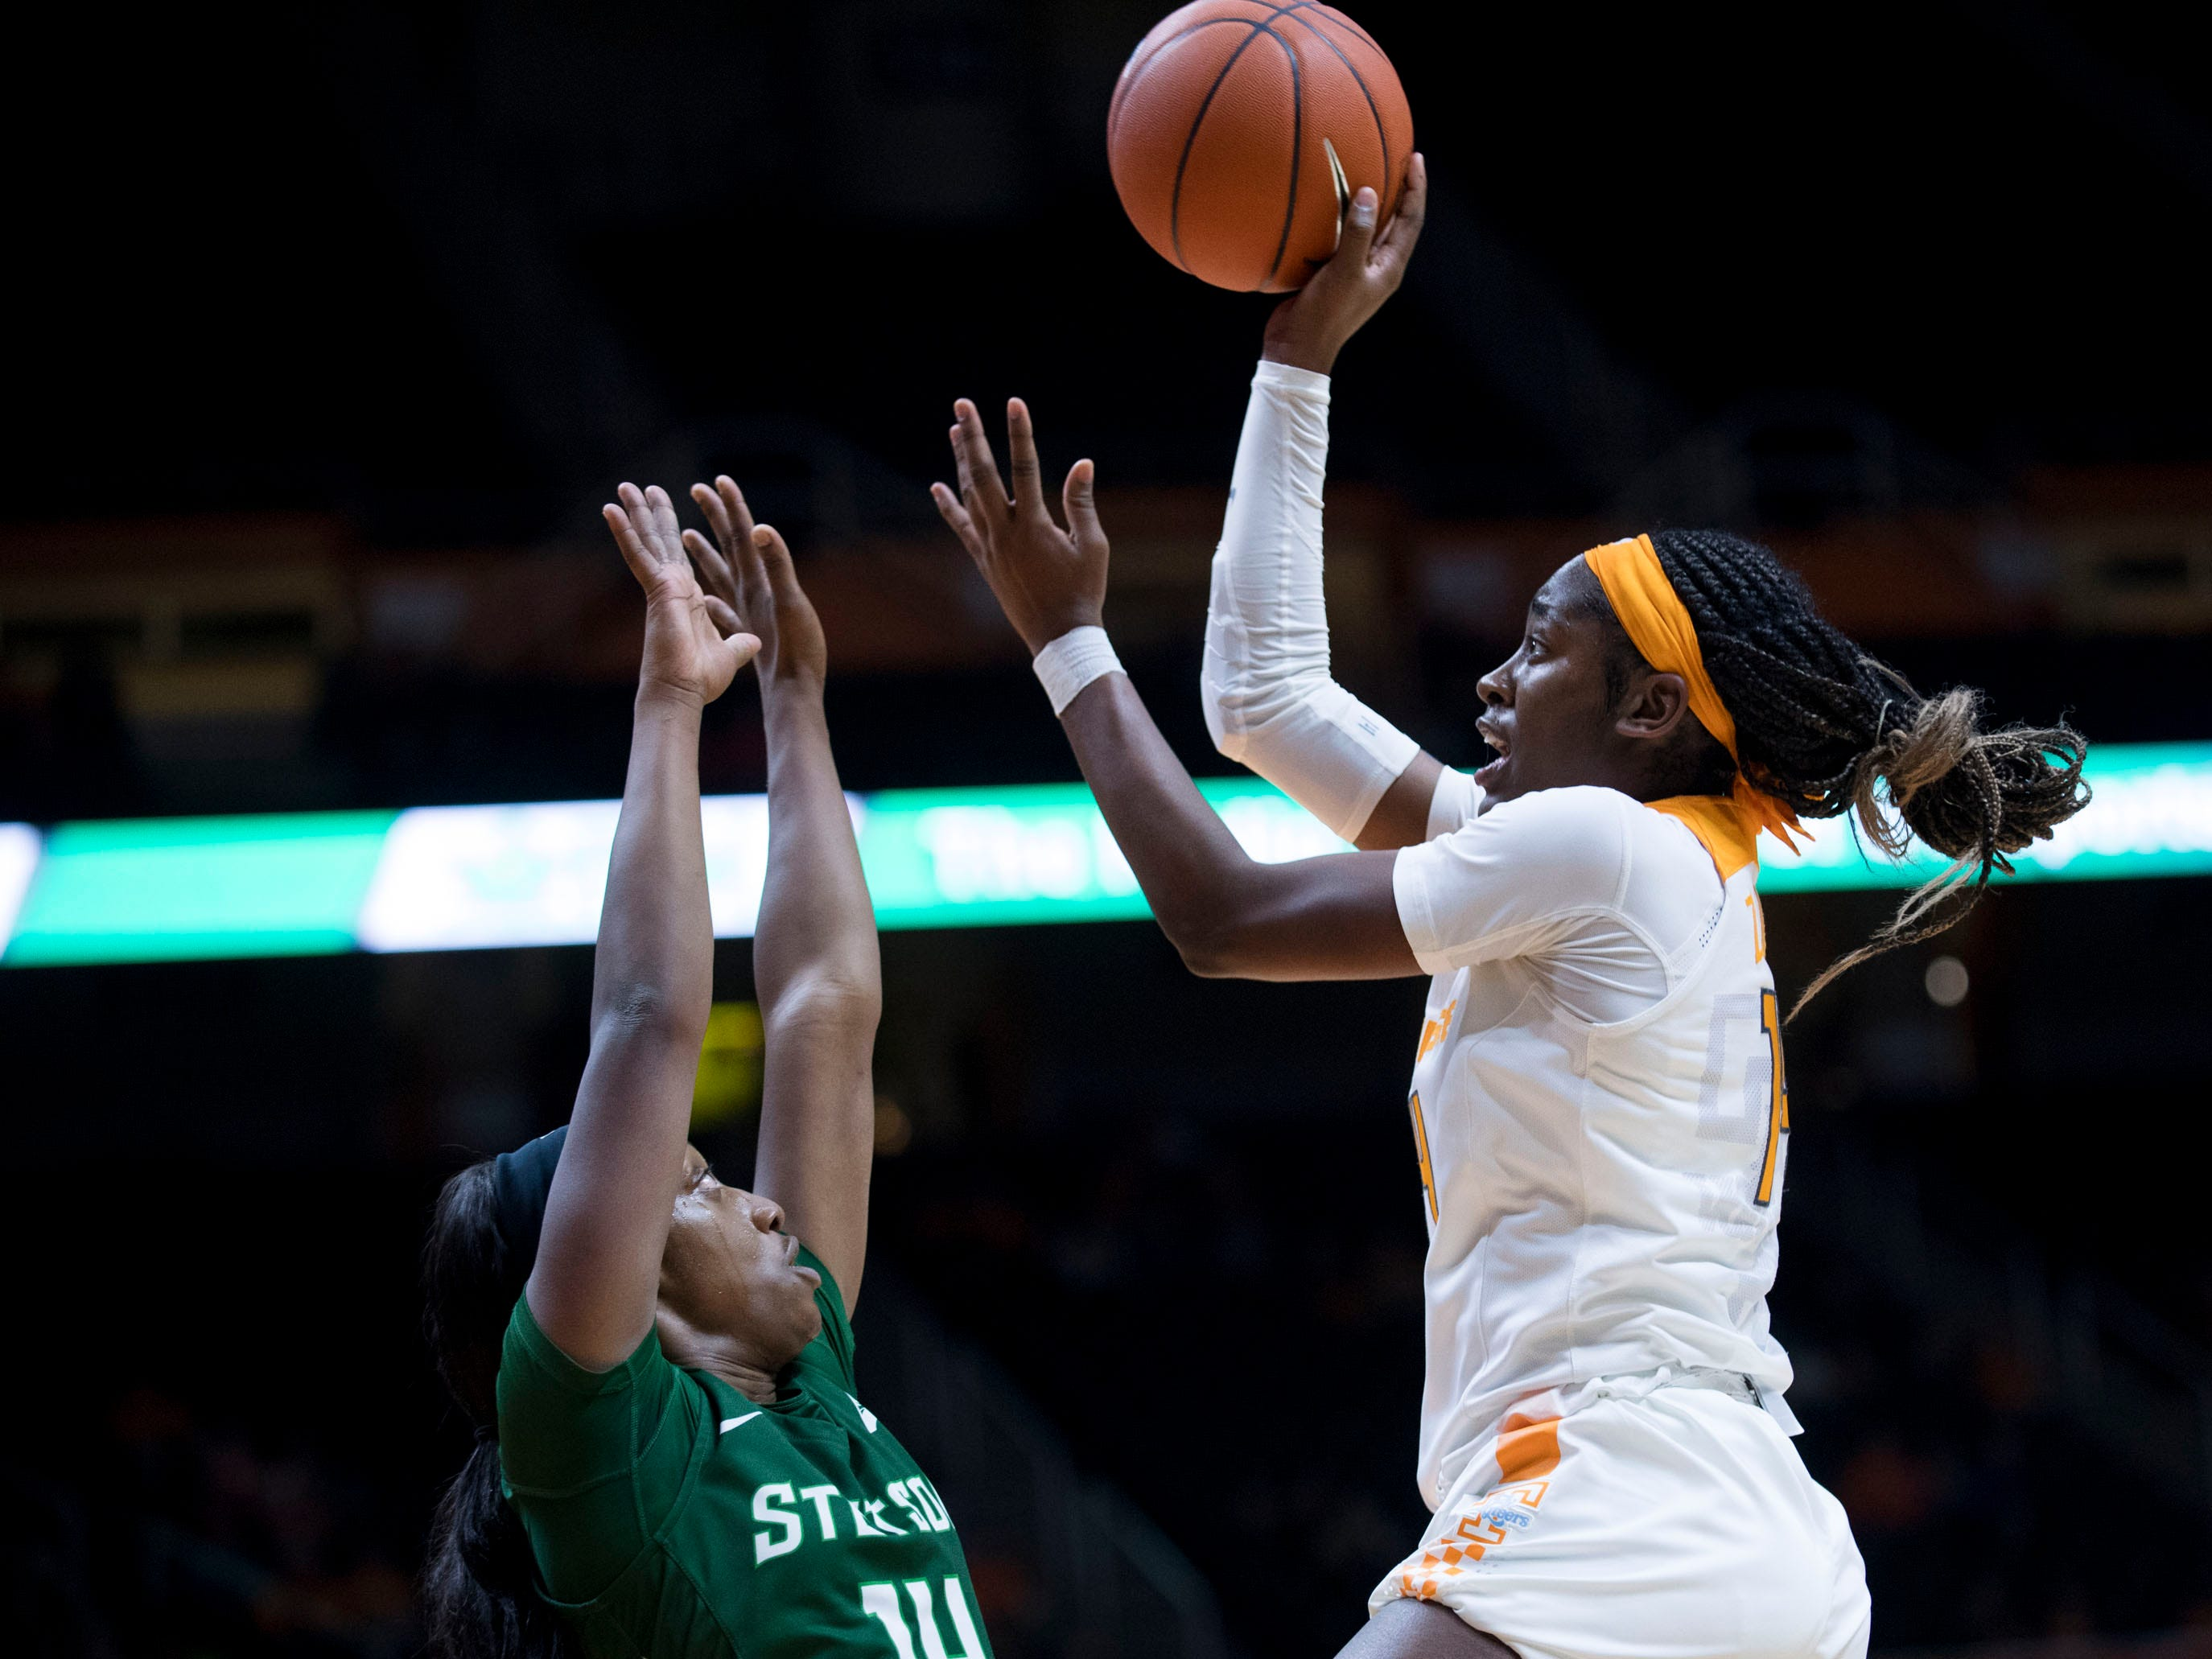 Tennessee's Zaay Green (14) attempts to score while defended by Stetson's Jon'Nita Henry (14) on Wednesday, December 5, 2018.